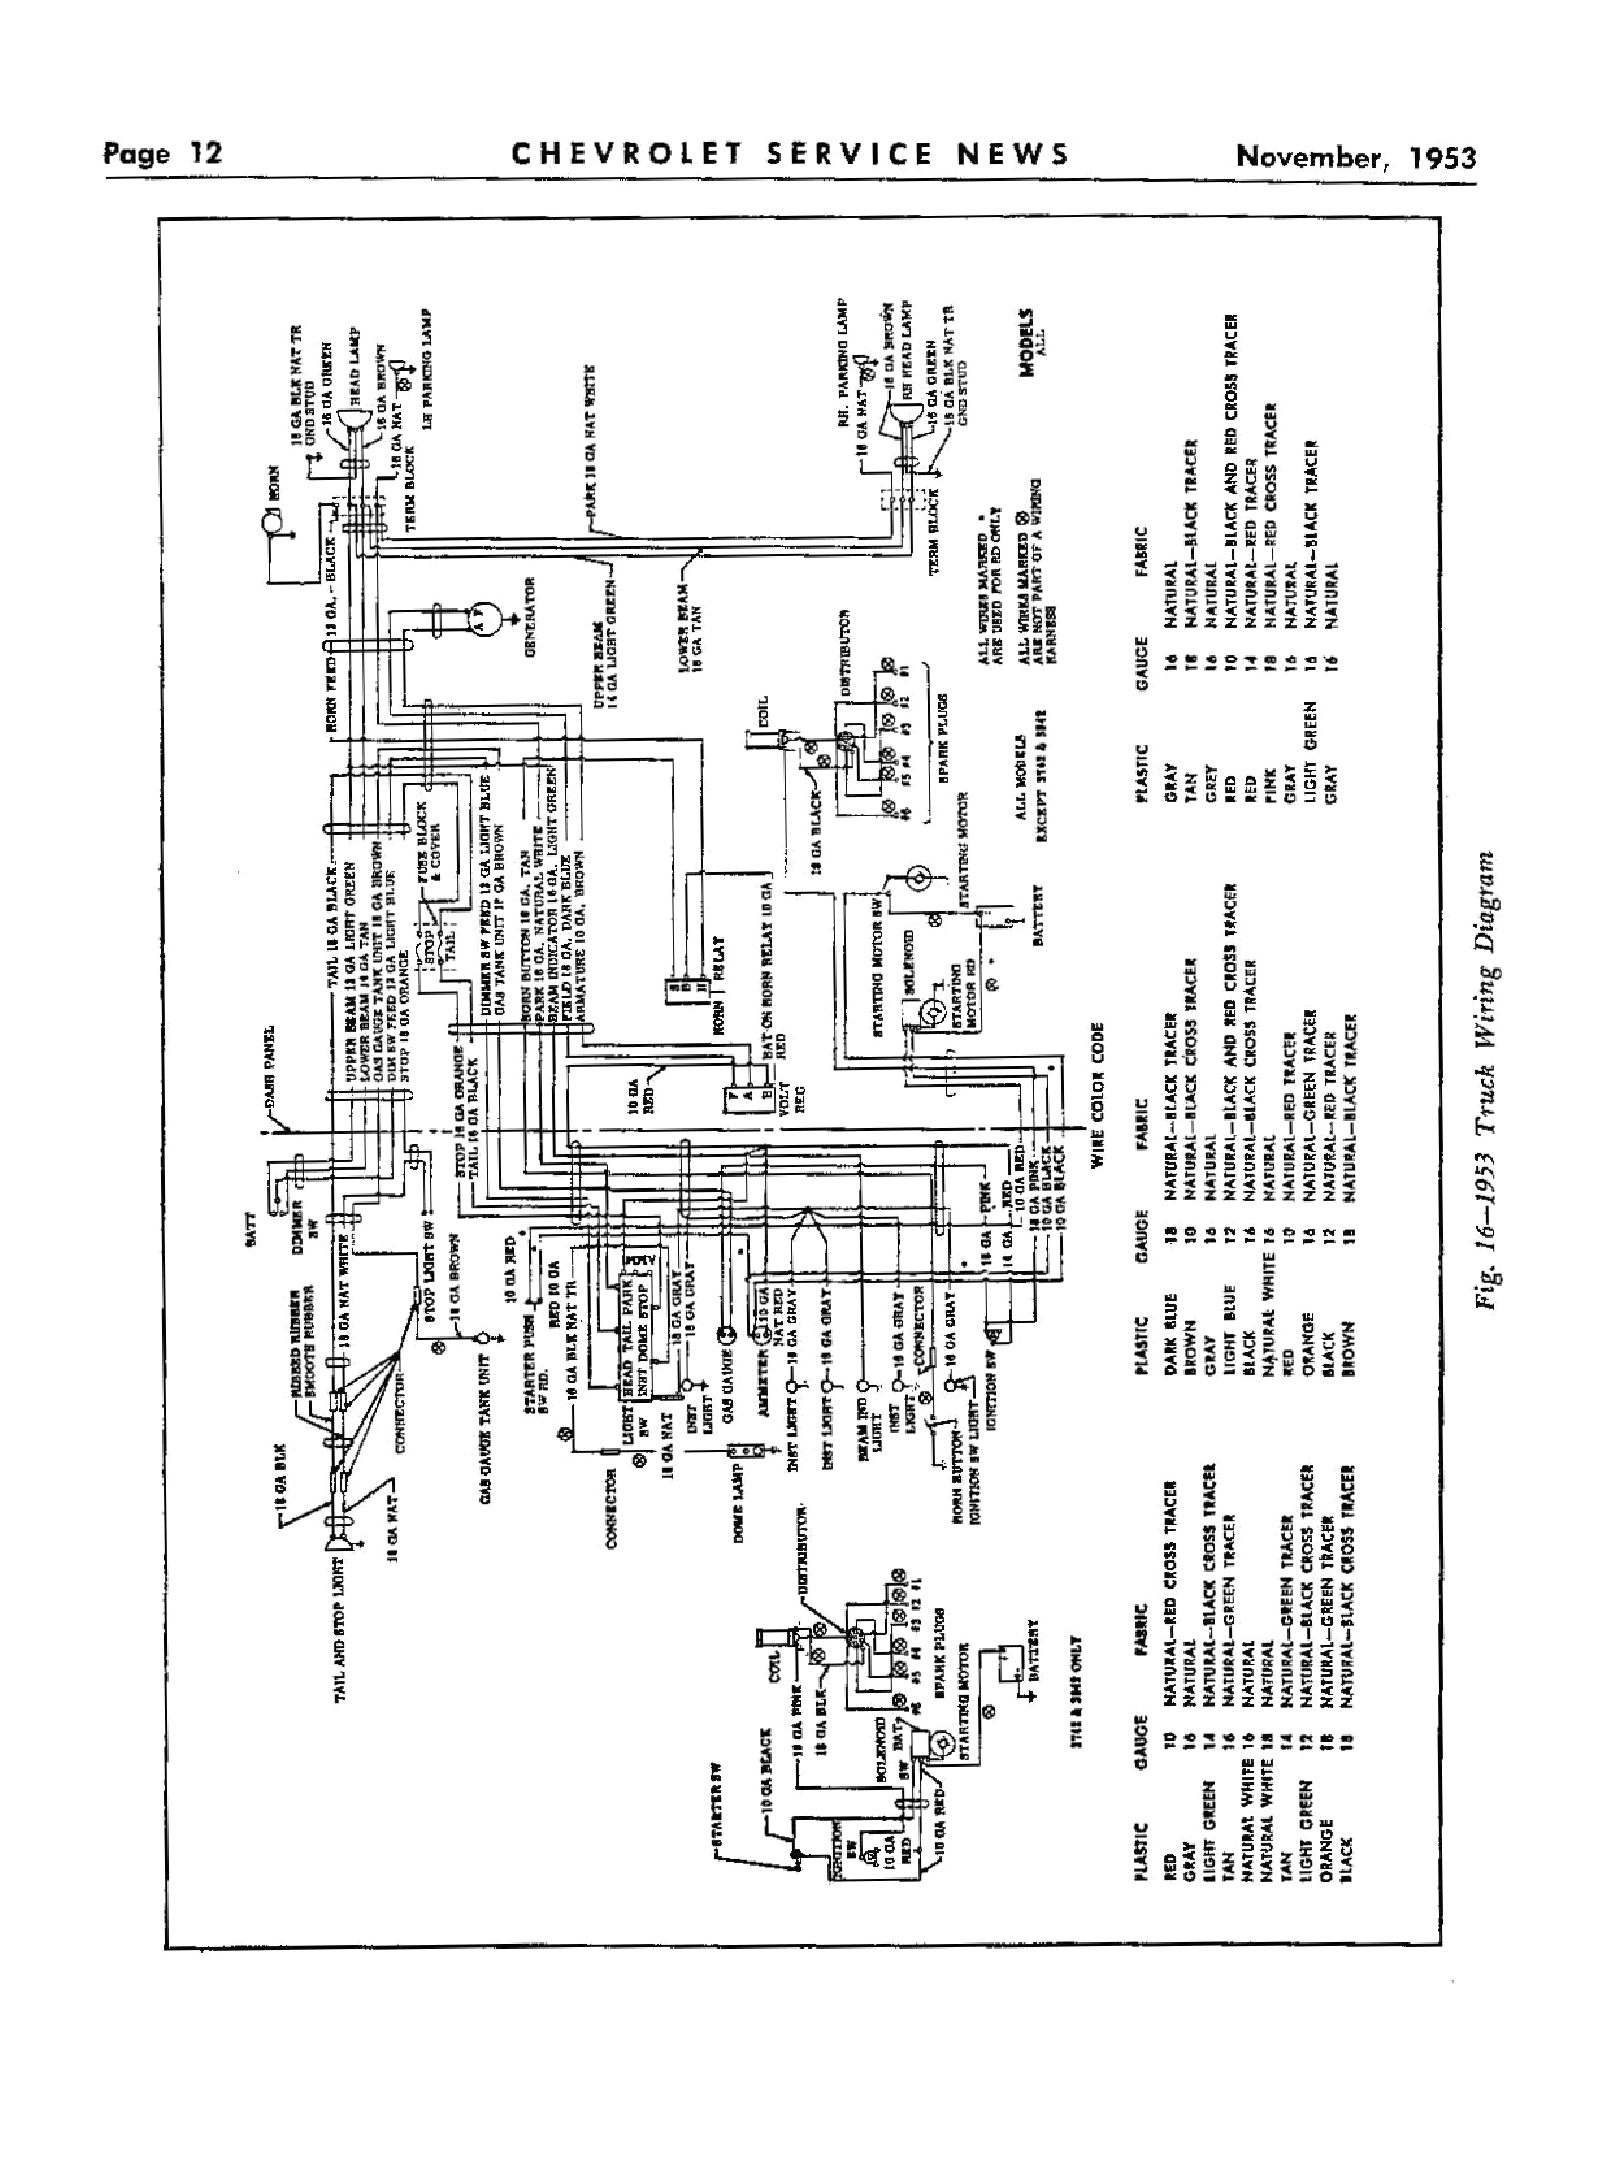 91 chevy truck 1500 wire diagram for the ignition switch 1953 solenoid wiring - the 1947 - present chevrolet & gmc ... #3